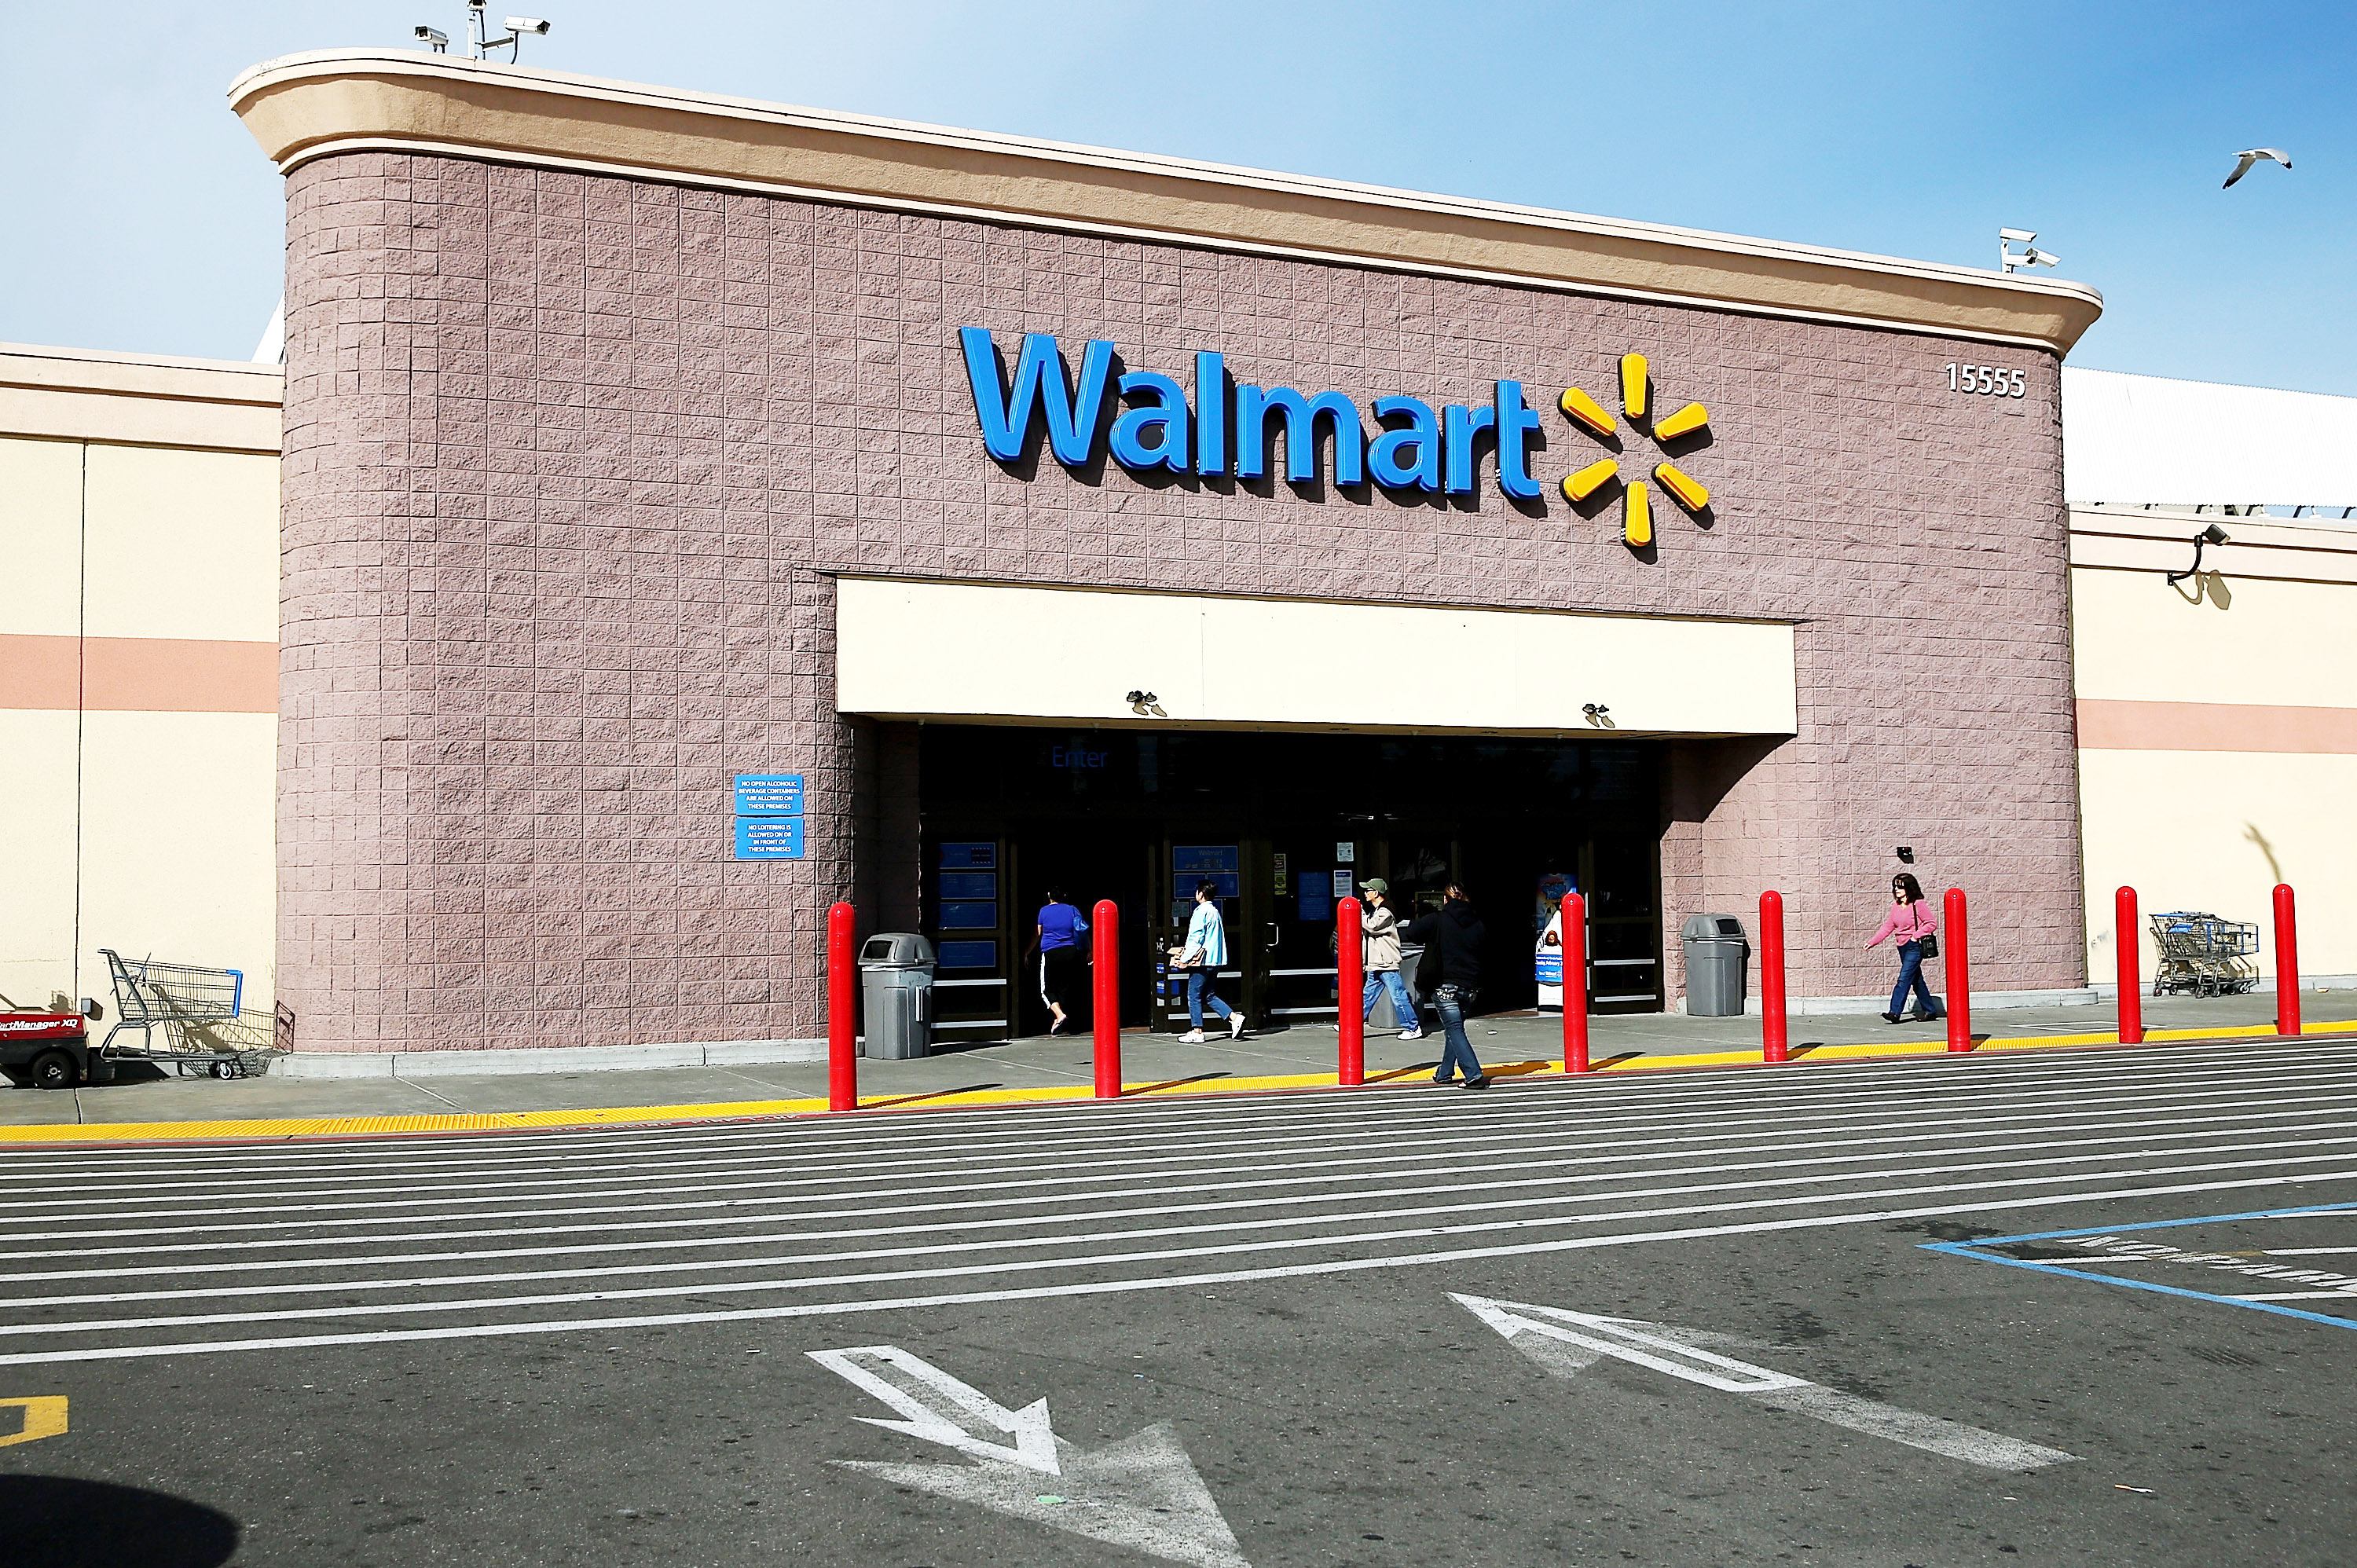 Customers enter a Wal-Mart store on Feb. 20, 2014 in San Lorenzo, Calif.